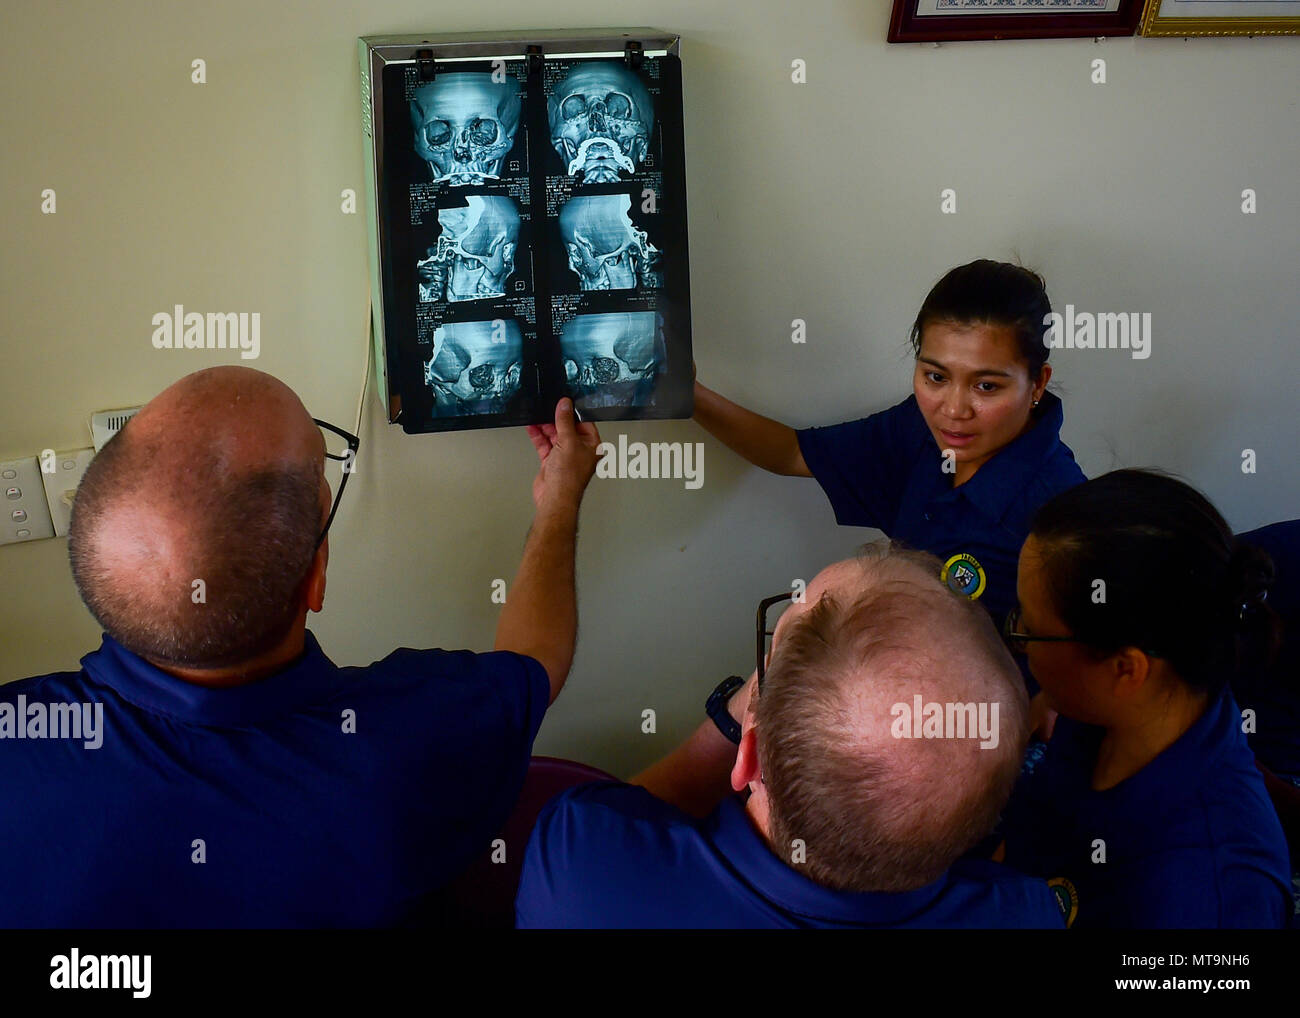 180518-N-QV906-386 NHA TRANG, Vietnam (May 18, 2018) U.S. Navy medical professionals assigned to Military Sealift Command hospital ship USNS Mercy (T-AH-19) inspect a surgical candidate's 3-dimensional reconstruction scan during a plastic surgery consultation.  Mercy is currently deployed in support of Pacific Partnership 2018 (PP18). PP18's mission is to work collectively with host and partner nations to enhance regional interoperability and disaster response capabilities, increase stability and security in the region, and foster new and enduring friendships across the Indo-Pacific Region. Pa - Stock Image